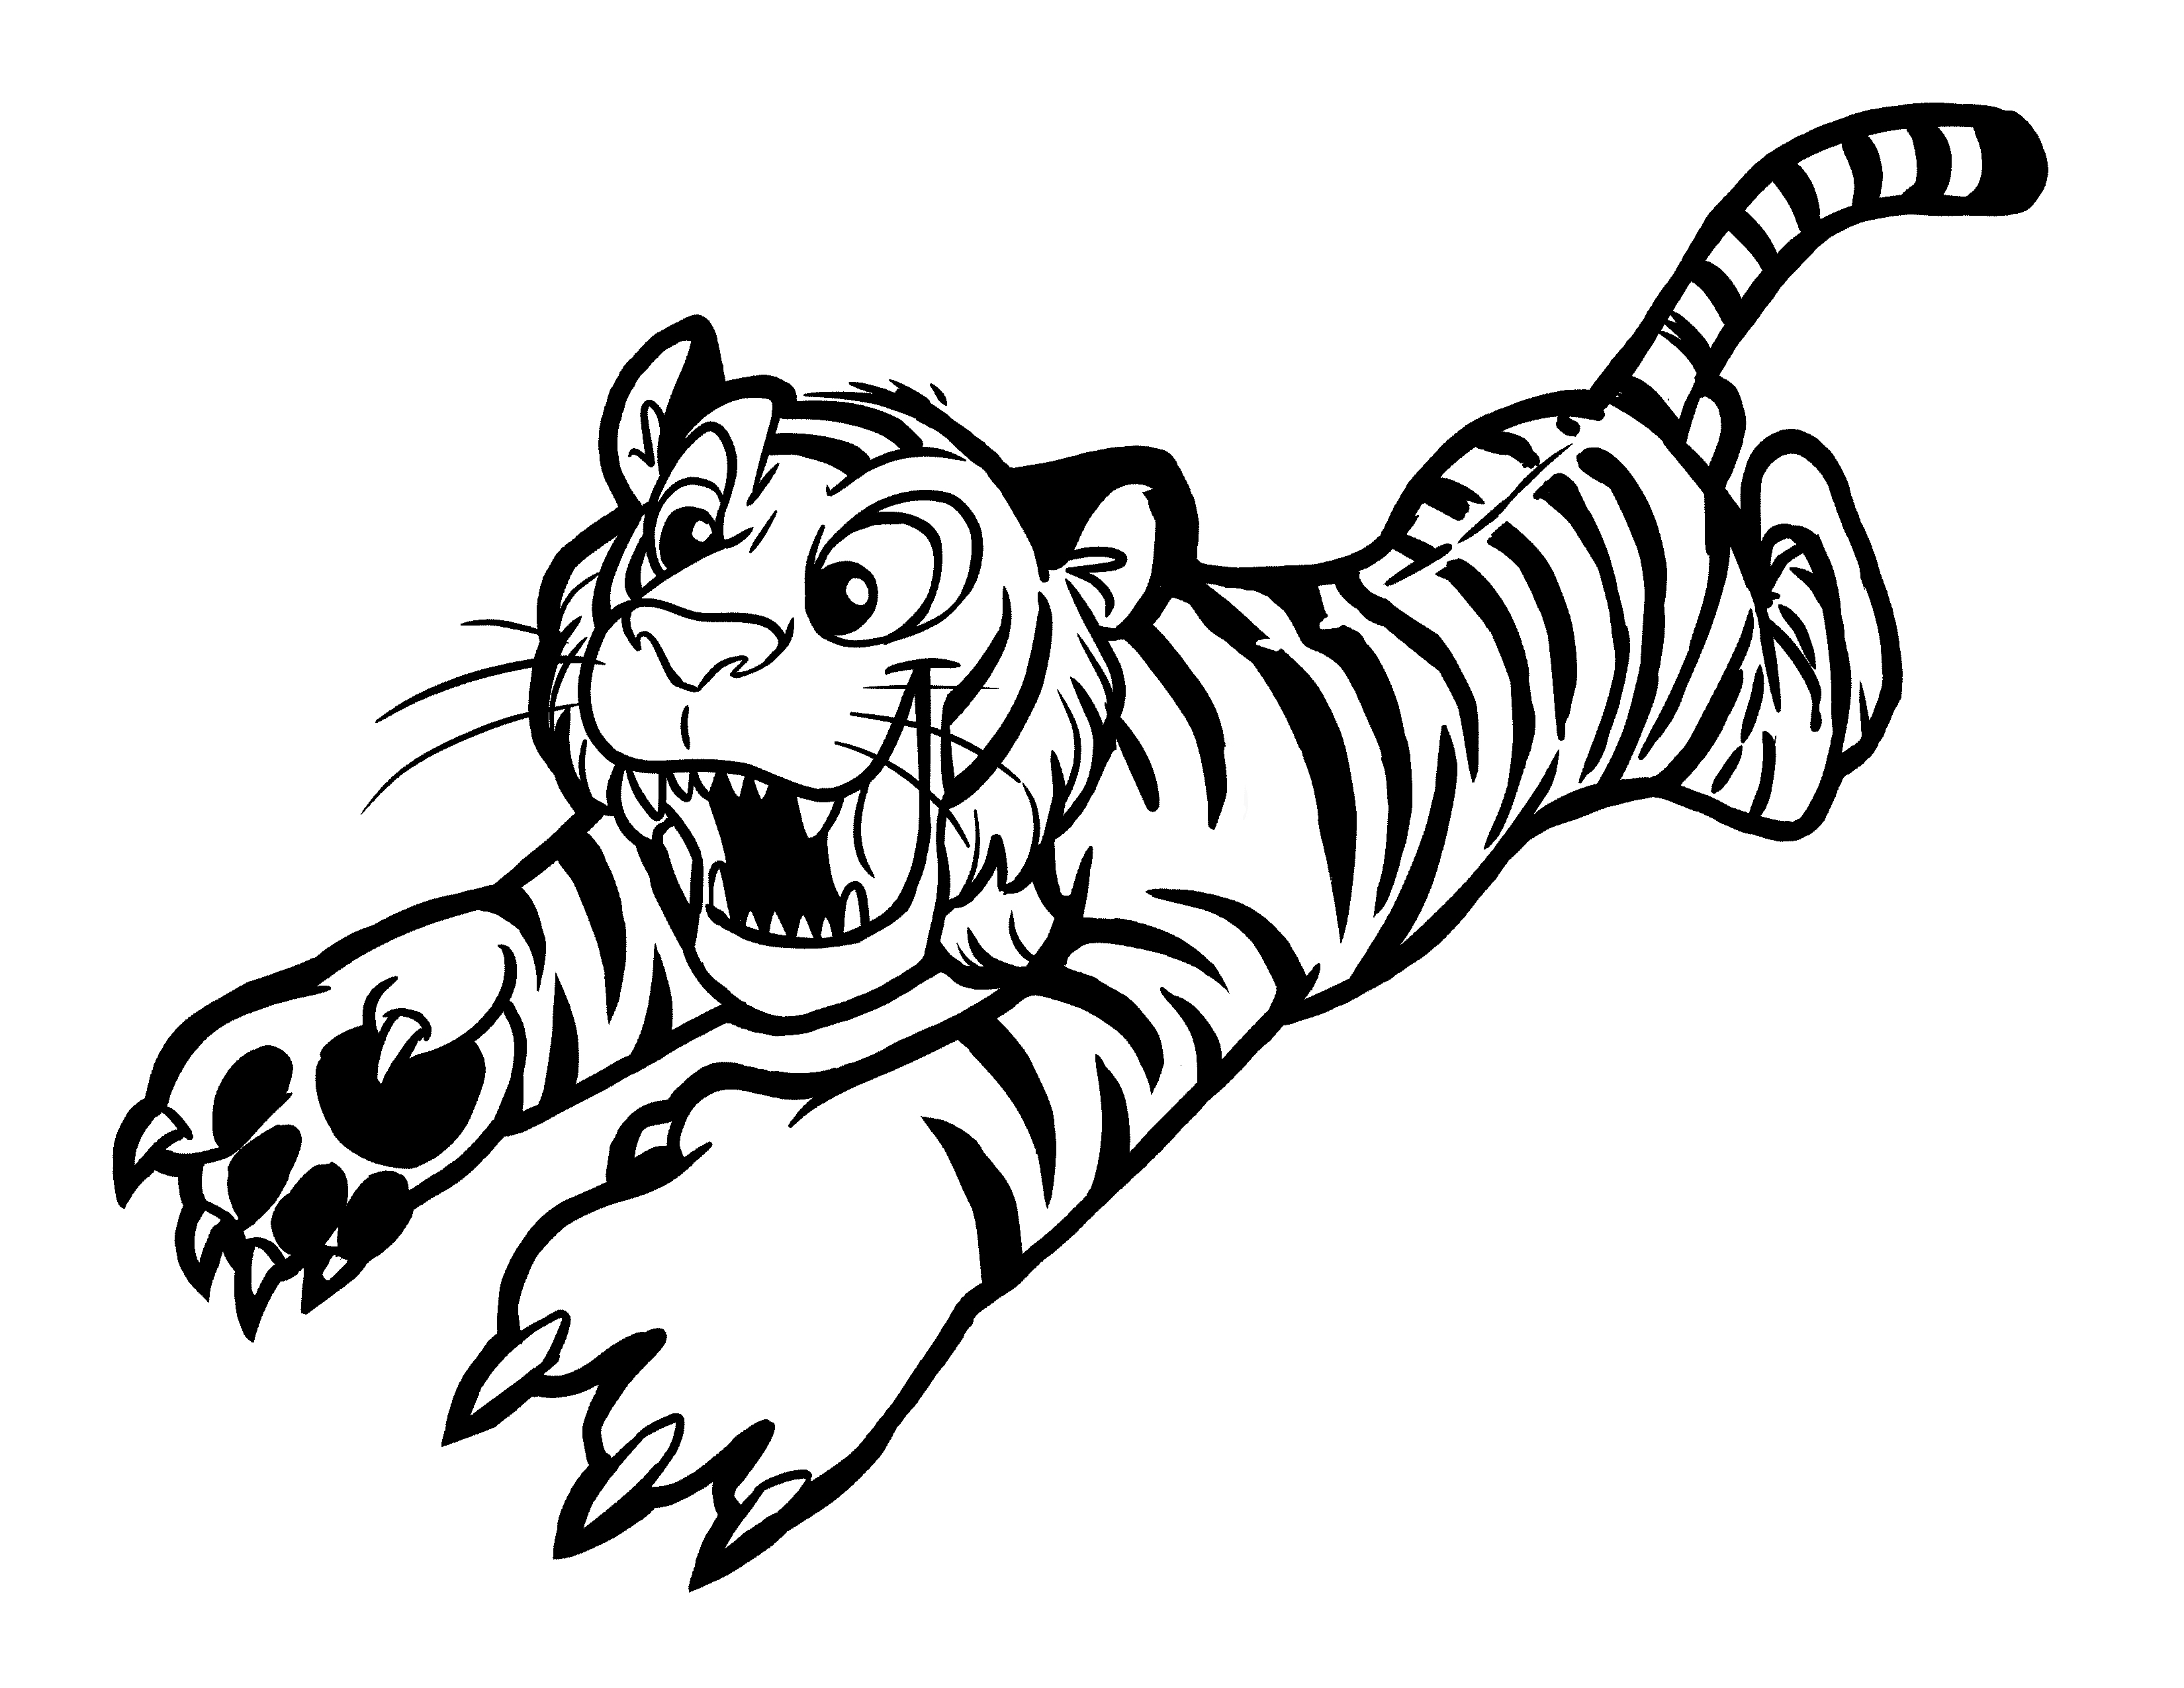 coloring pictures of tigers free printable tiger coloring pages for kids coloring pictures tigers of